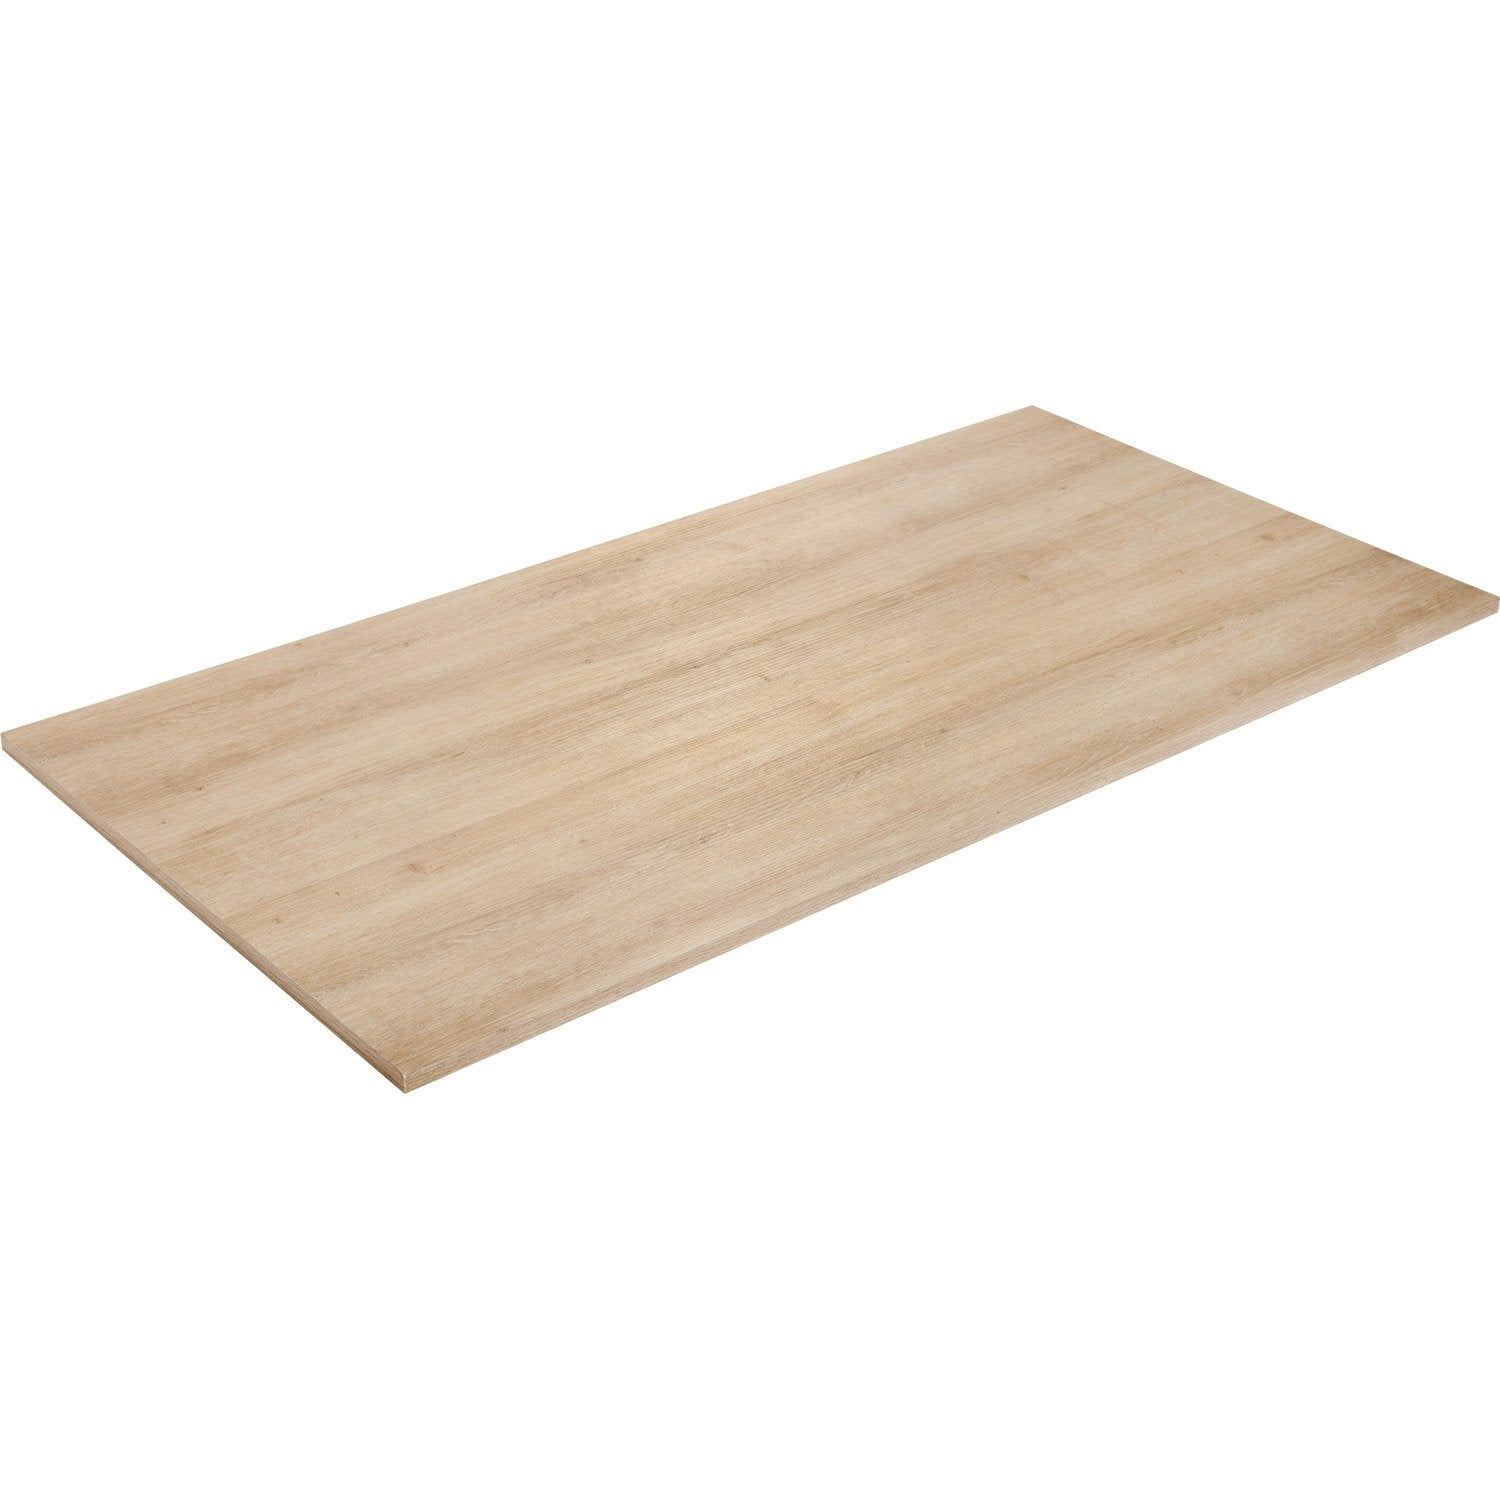 Plateau de table agglom r ch ne x cm x for Carrelage 80 x 80